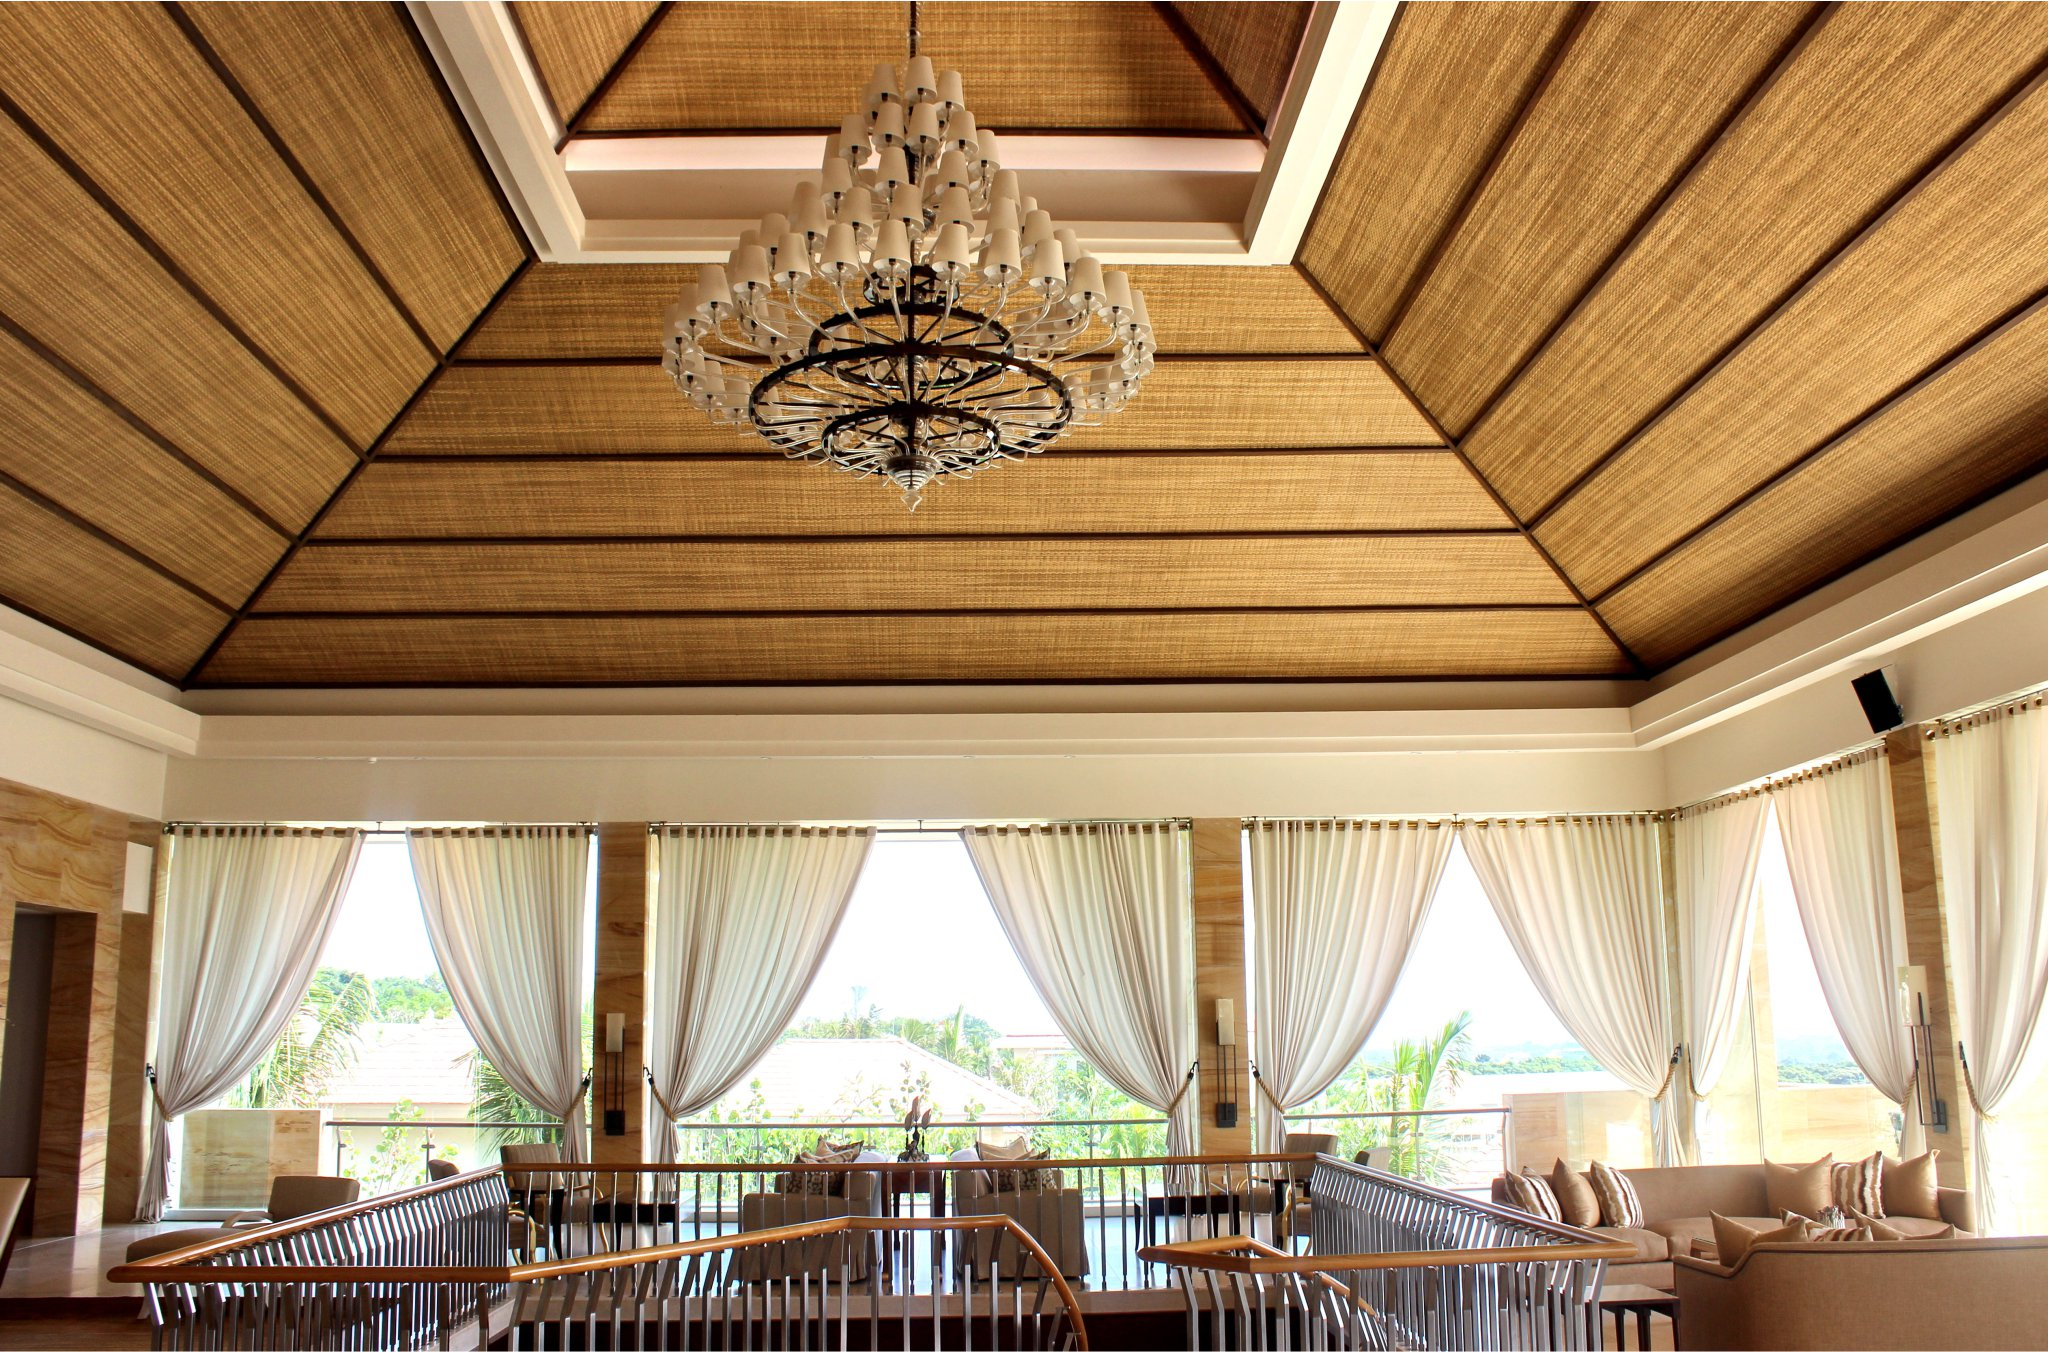 Virosurface installed in The Mulia Hotel Bali _ Environmentally Friendly All-Weather Synthetic Wicker